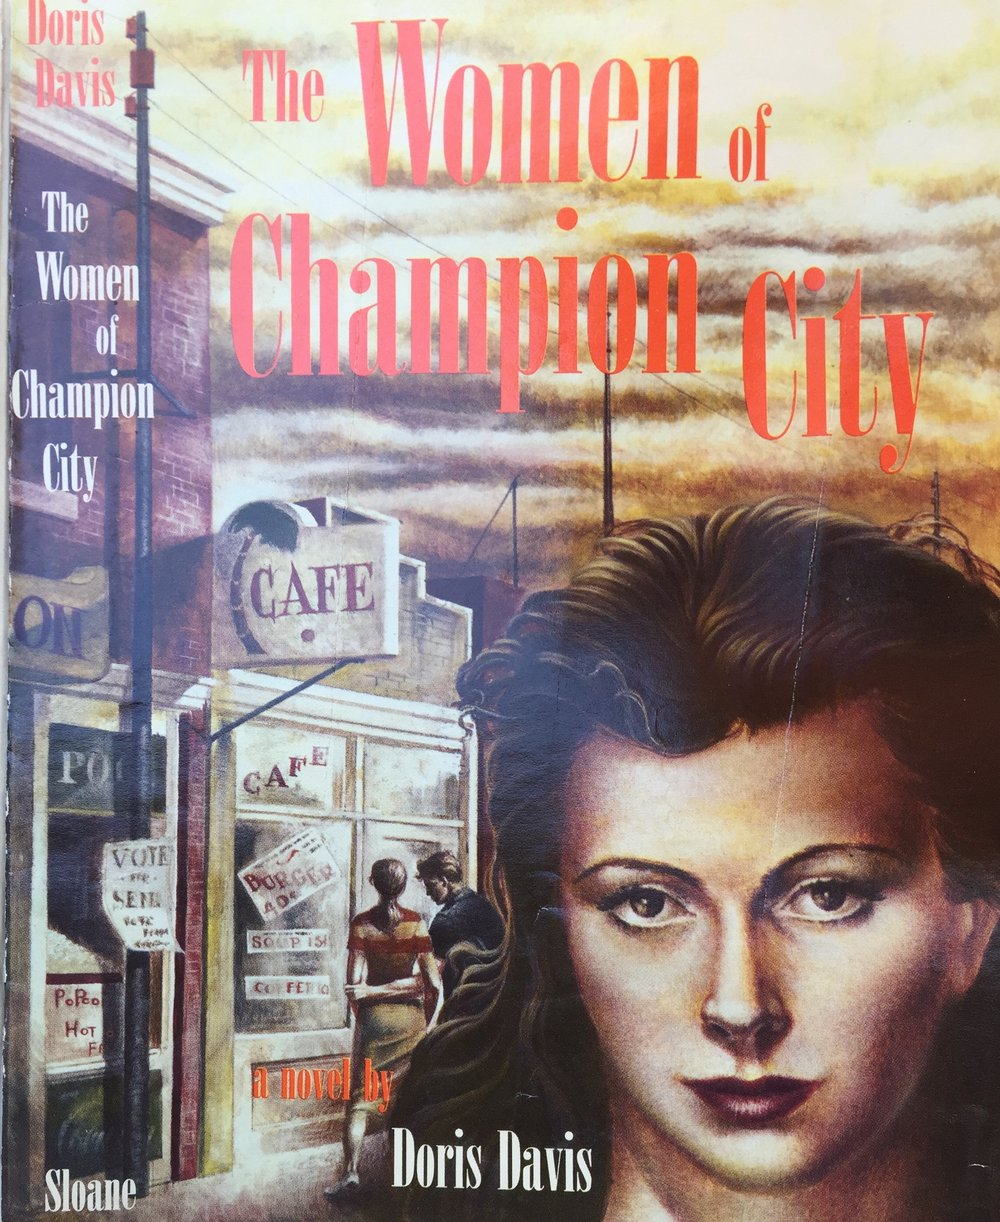 The Women of Champion City.jpg